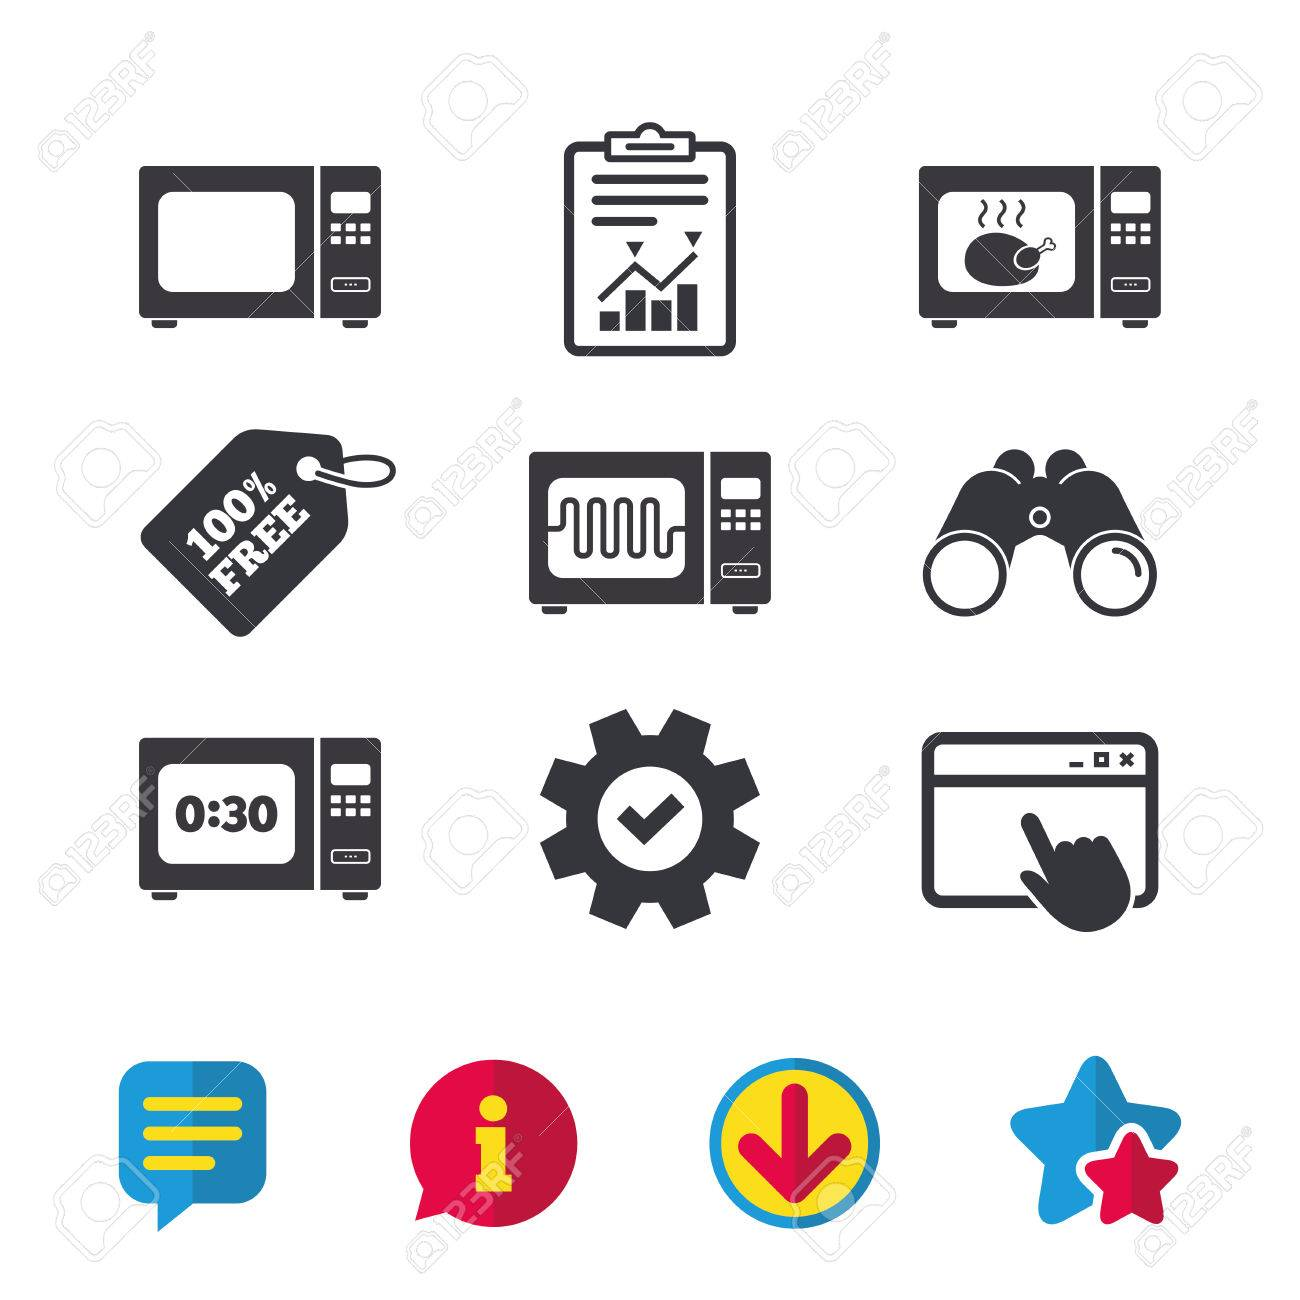 Microwave oven icons cook in electric stove symbols grill chicken microwave oven icons cook in electric stove symbols grill chicken with timer signs buycottarizona Image collections